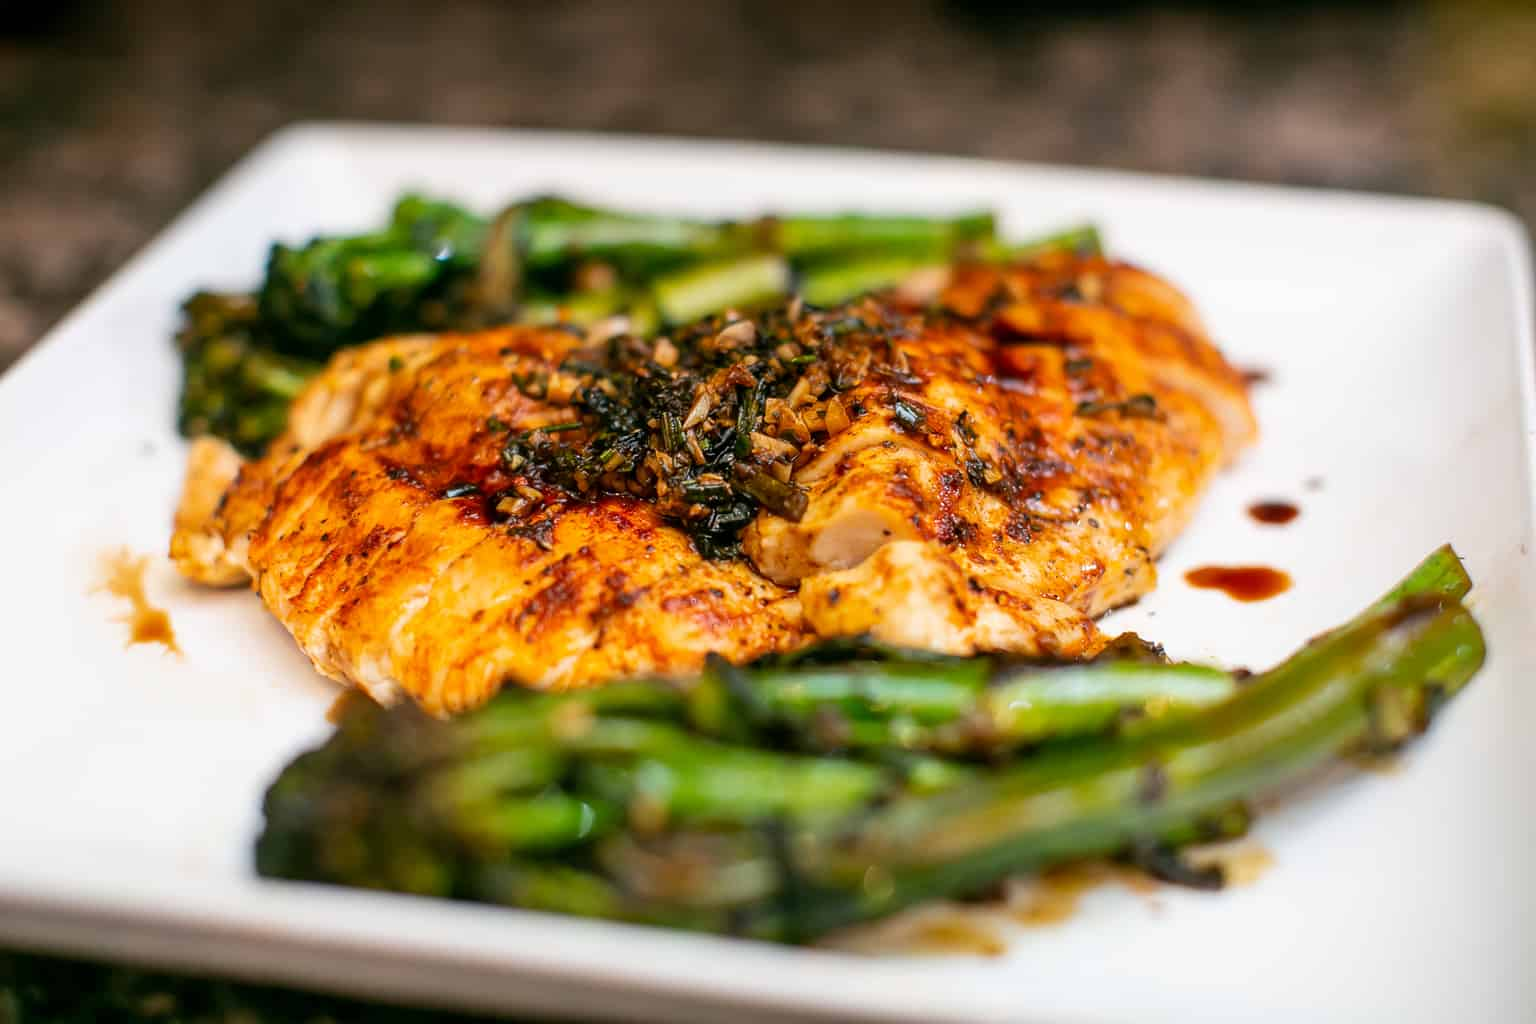 Close up of oven baked chicken breast with asparagus